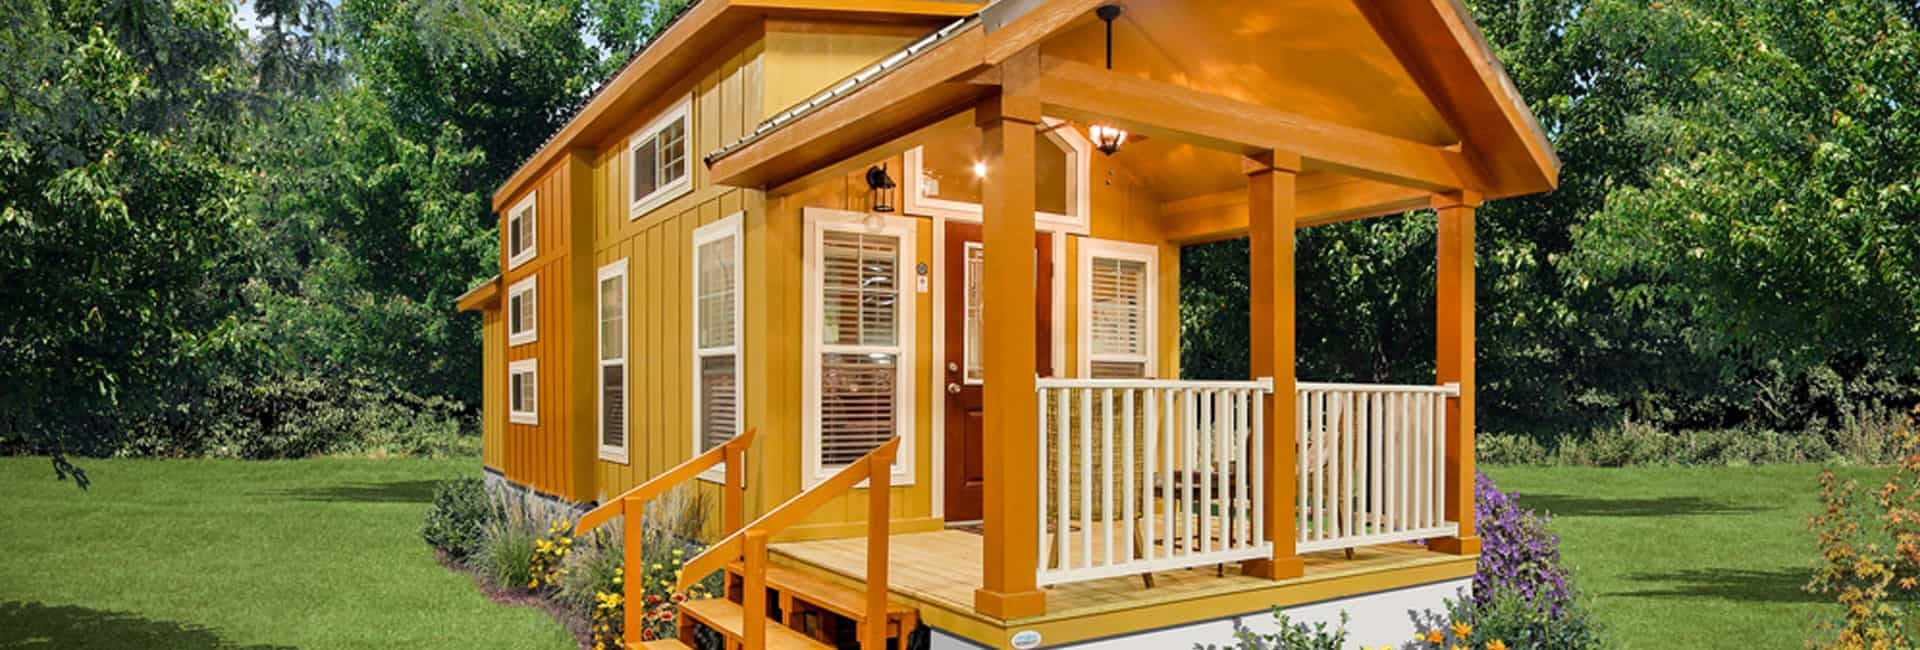 Tiny Houses are portability, functionality, and luxury